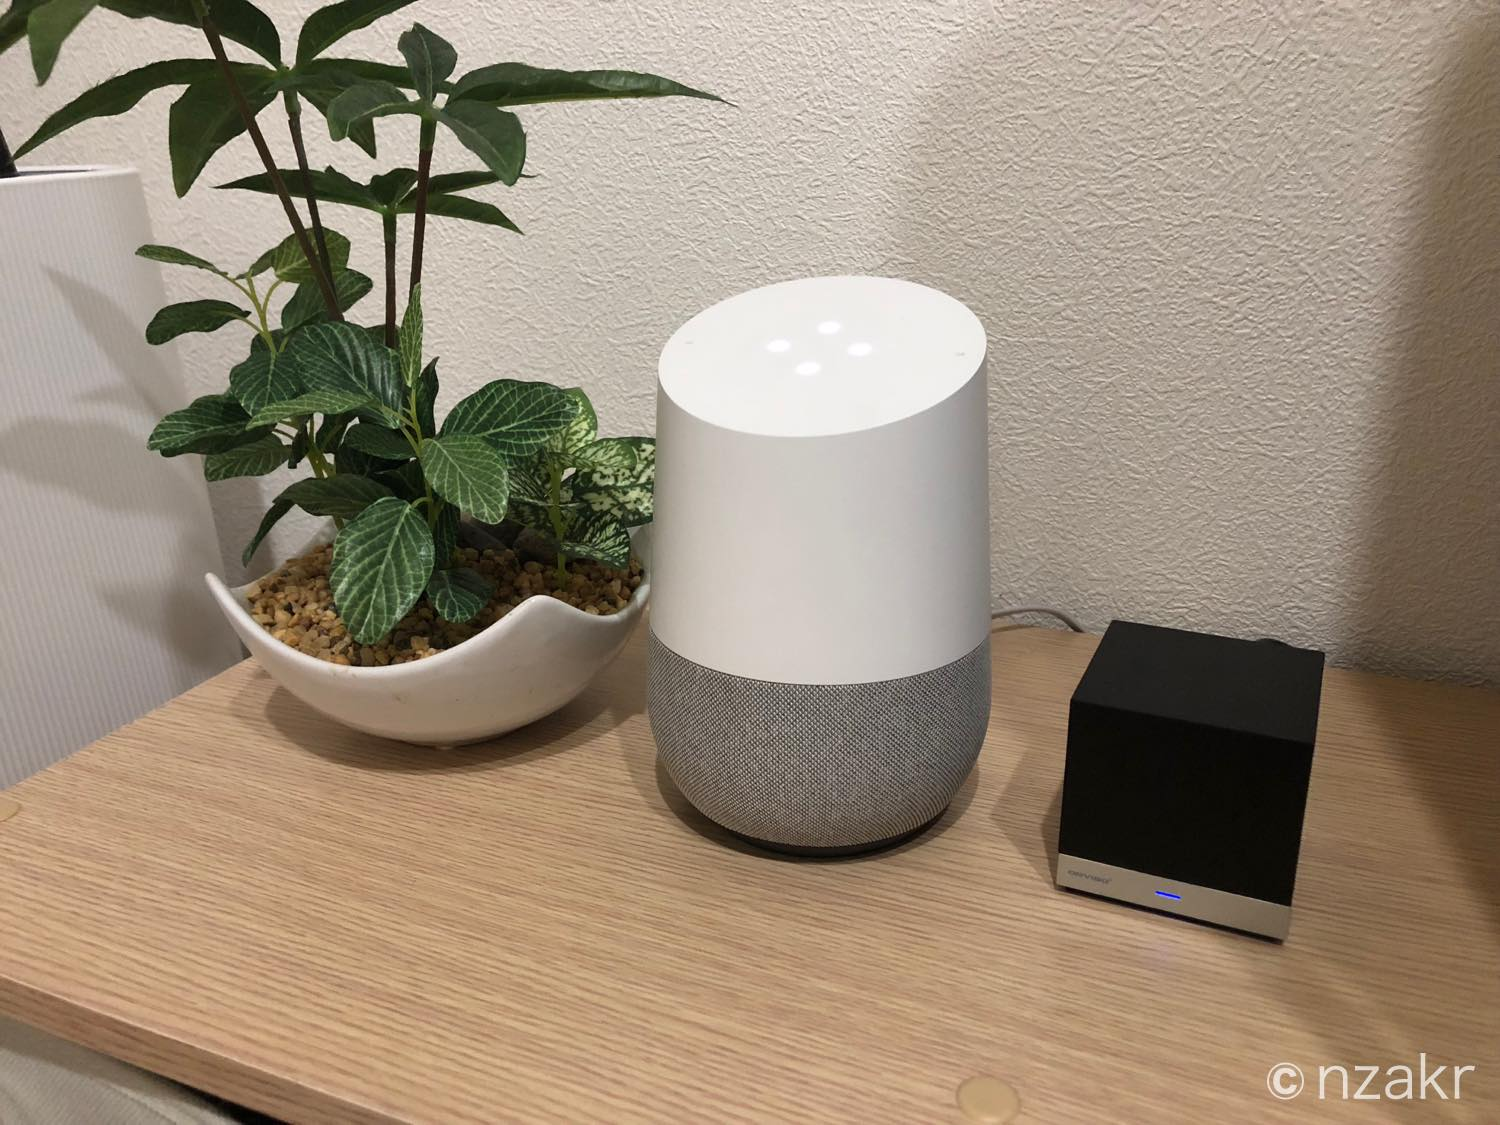 Magic CubeとGoogle Home